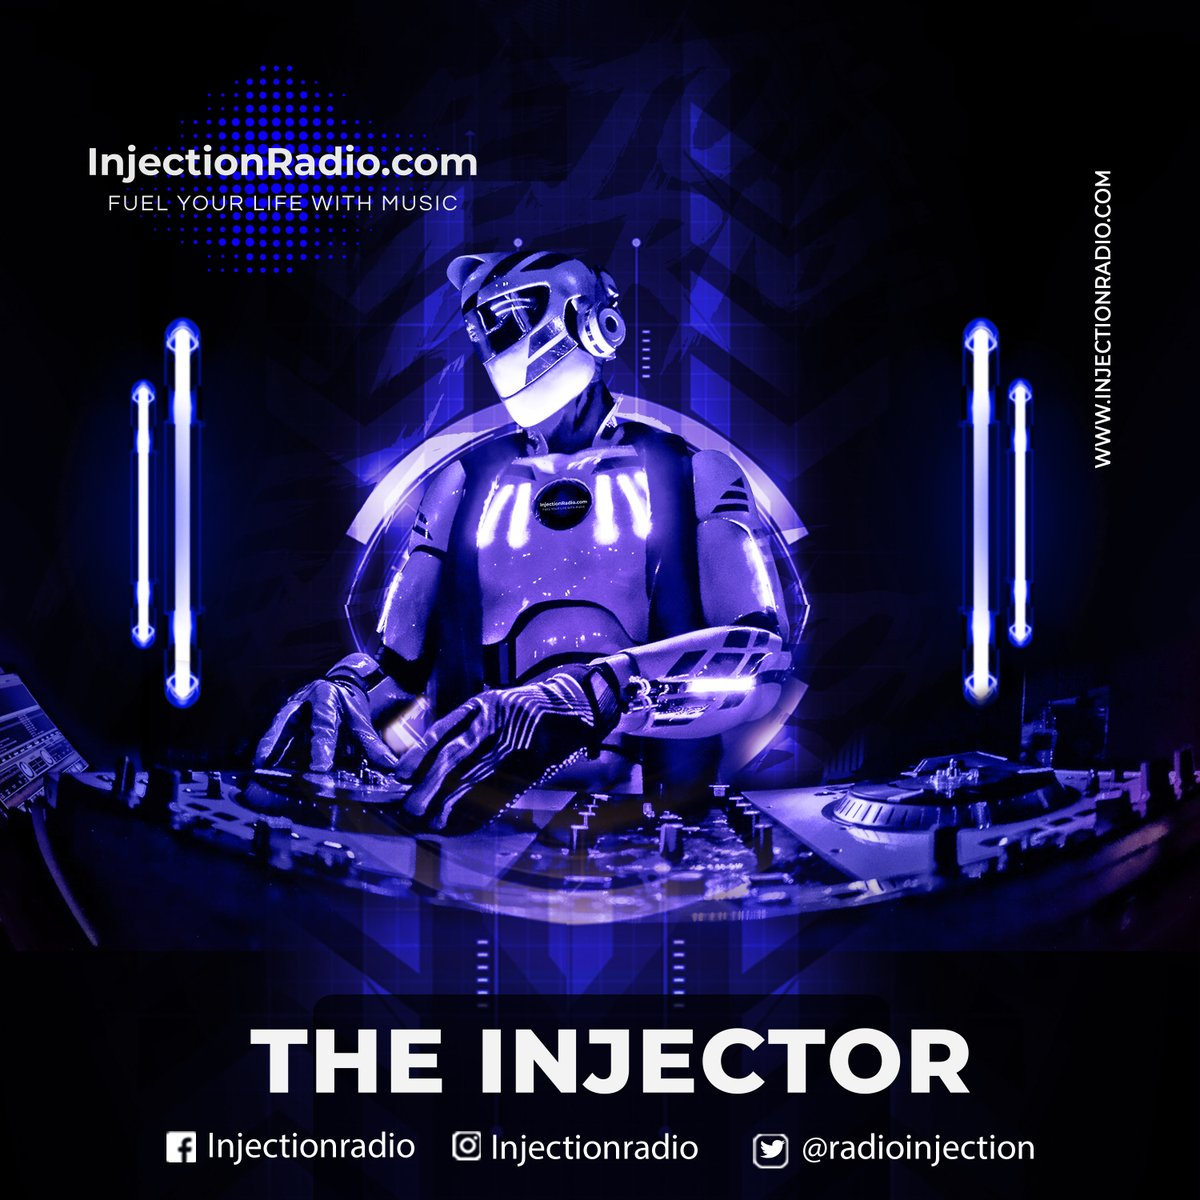 Remember! We currently have no Live DJ's during the day! But THE INJECTOR is here to keep you partying strong! Tune in now at http://www.injectionradio.com #party #partyatwork #partytime #grabthespeaker #liveradio #robotpic.twitter.com/tR66REq5Rp